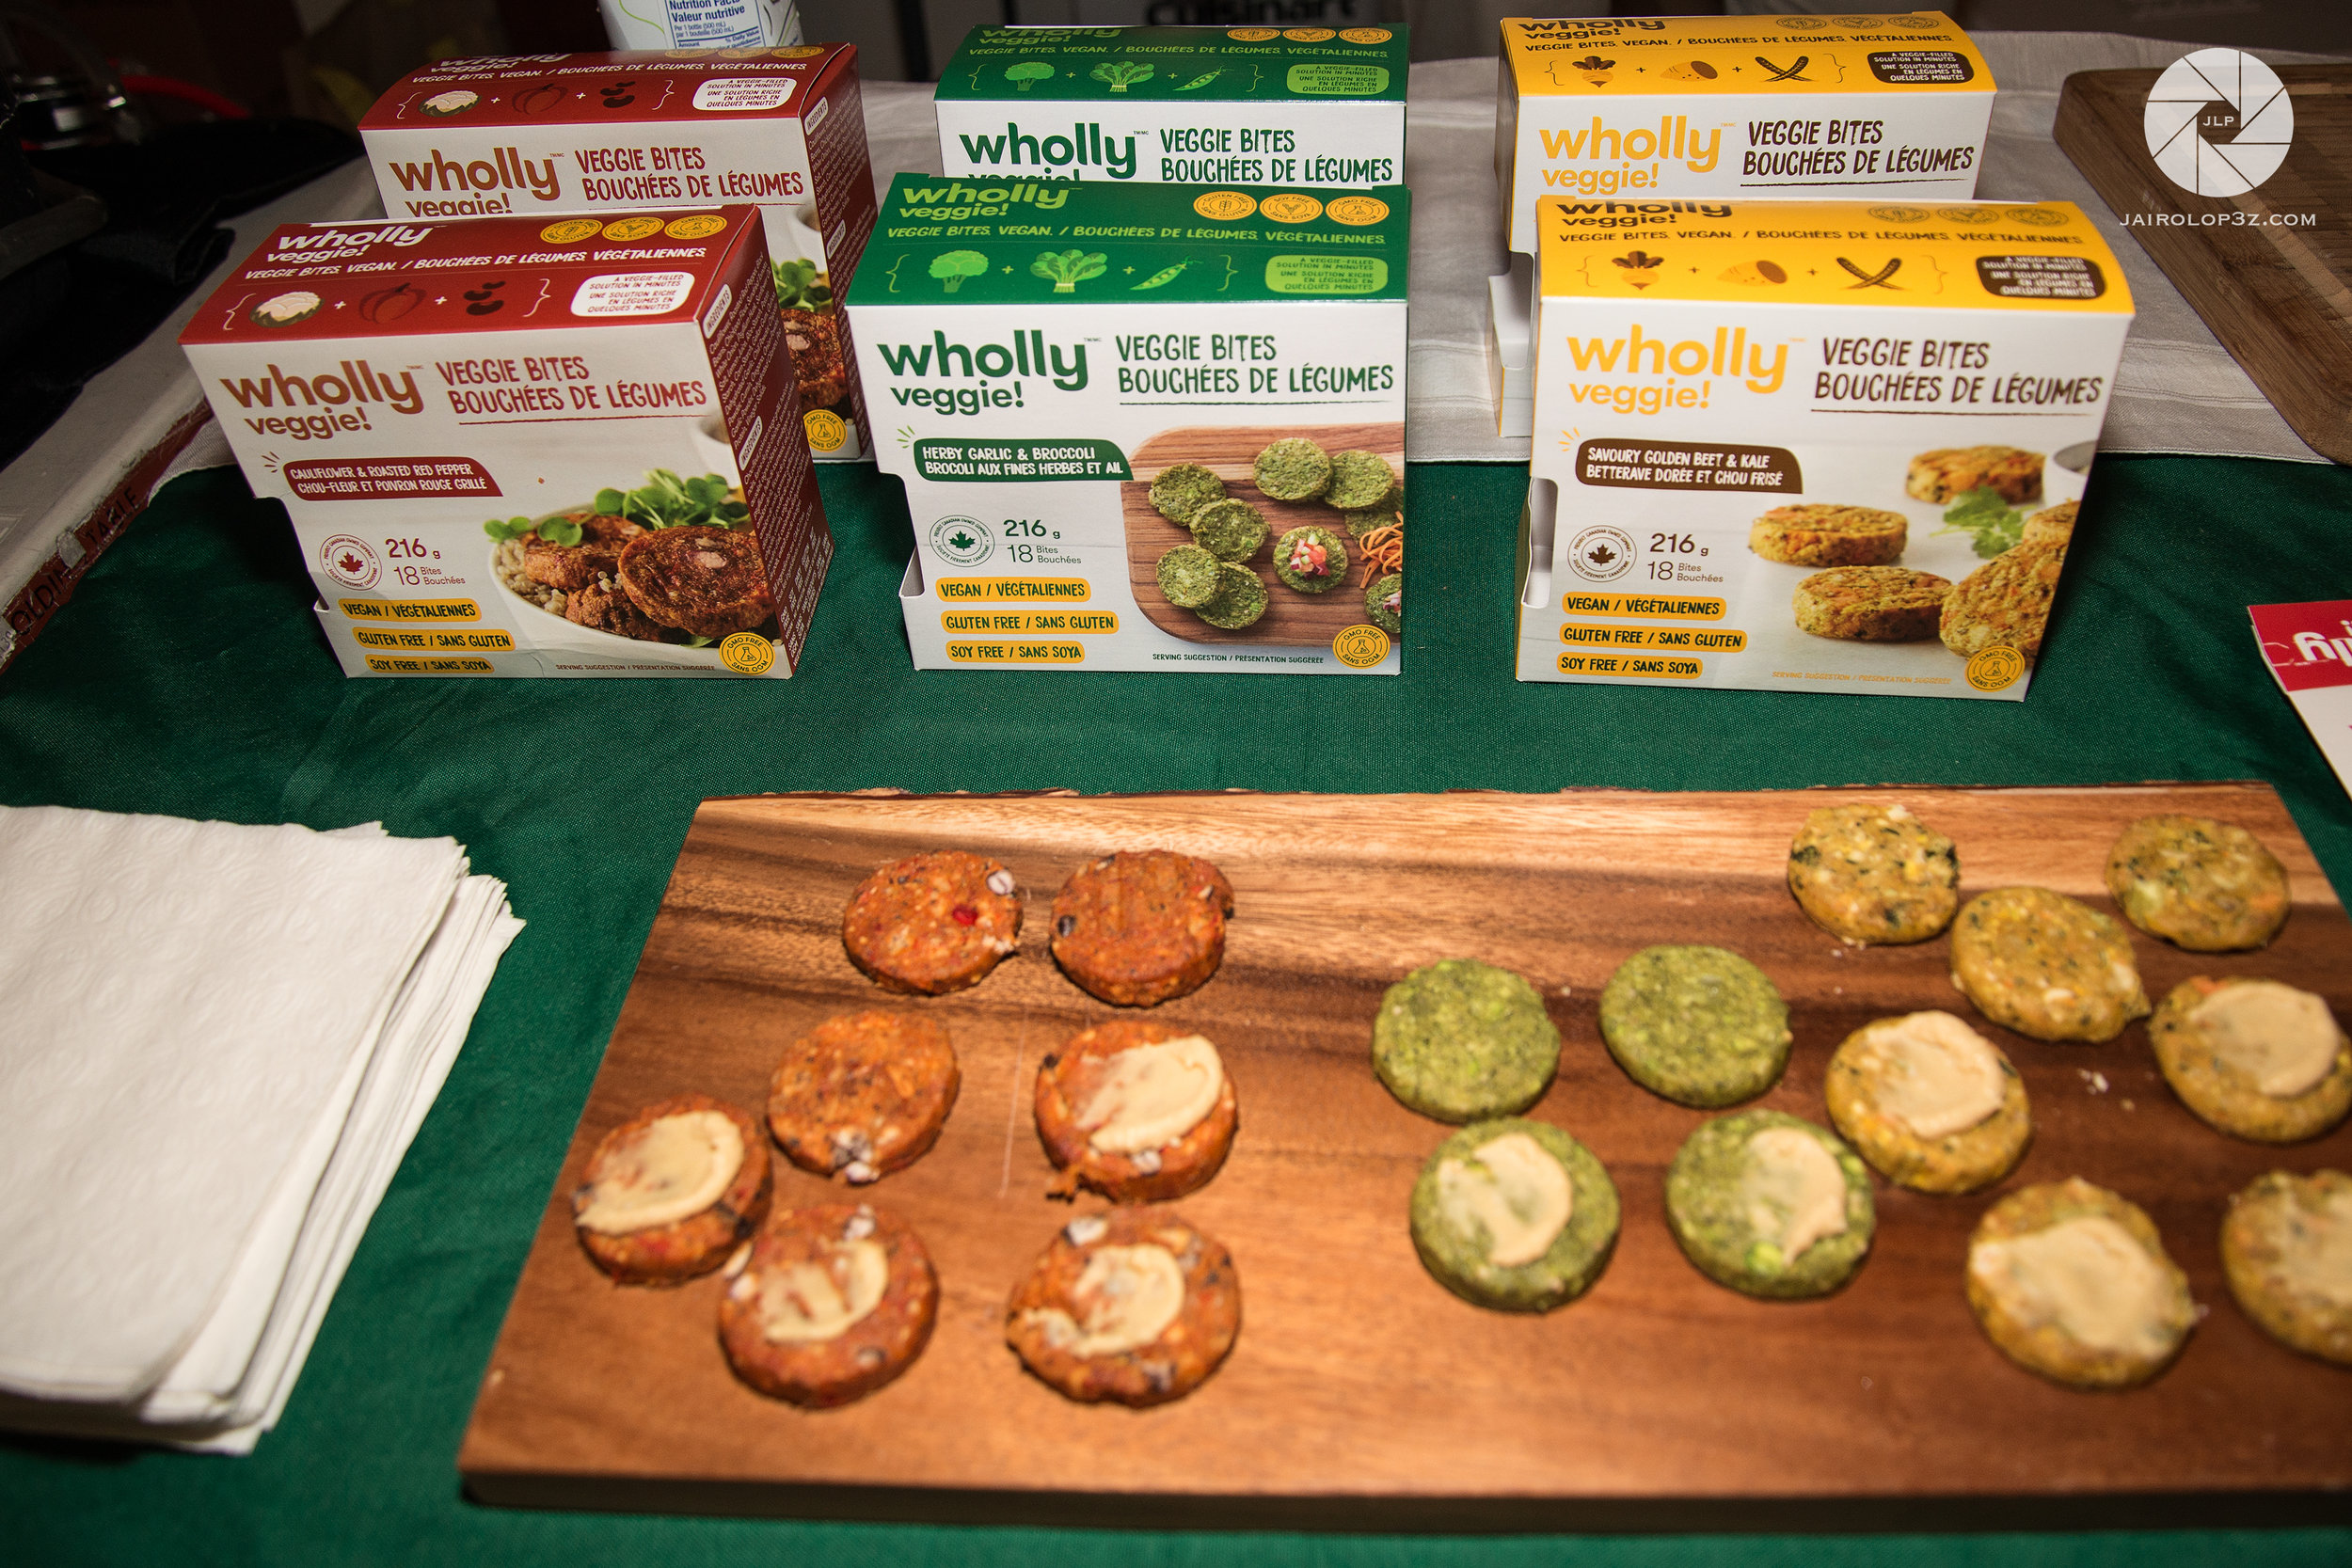 Vegan Burger Bites from  Wholly Veggie .  Photo by: Aaron Fisher.